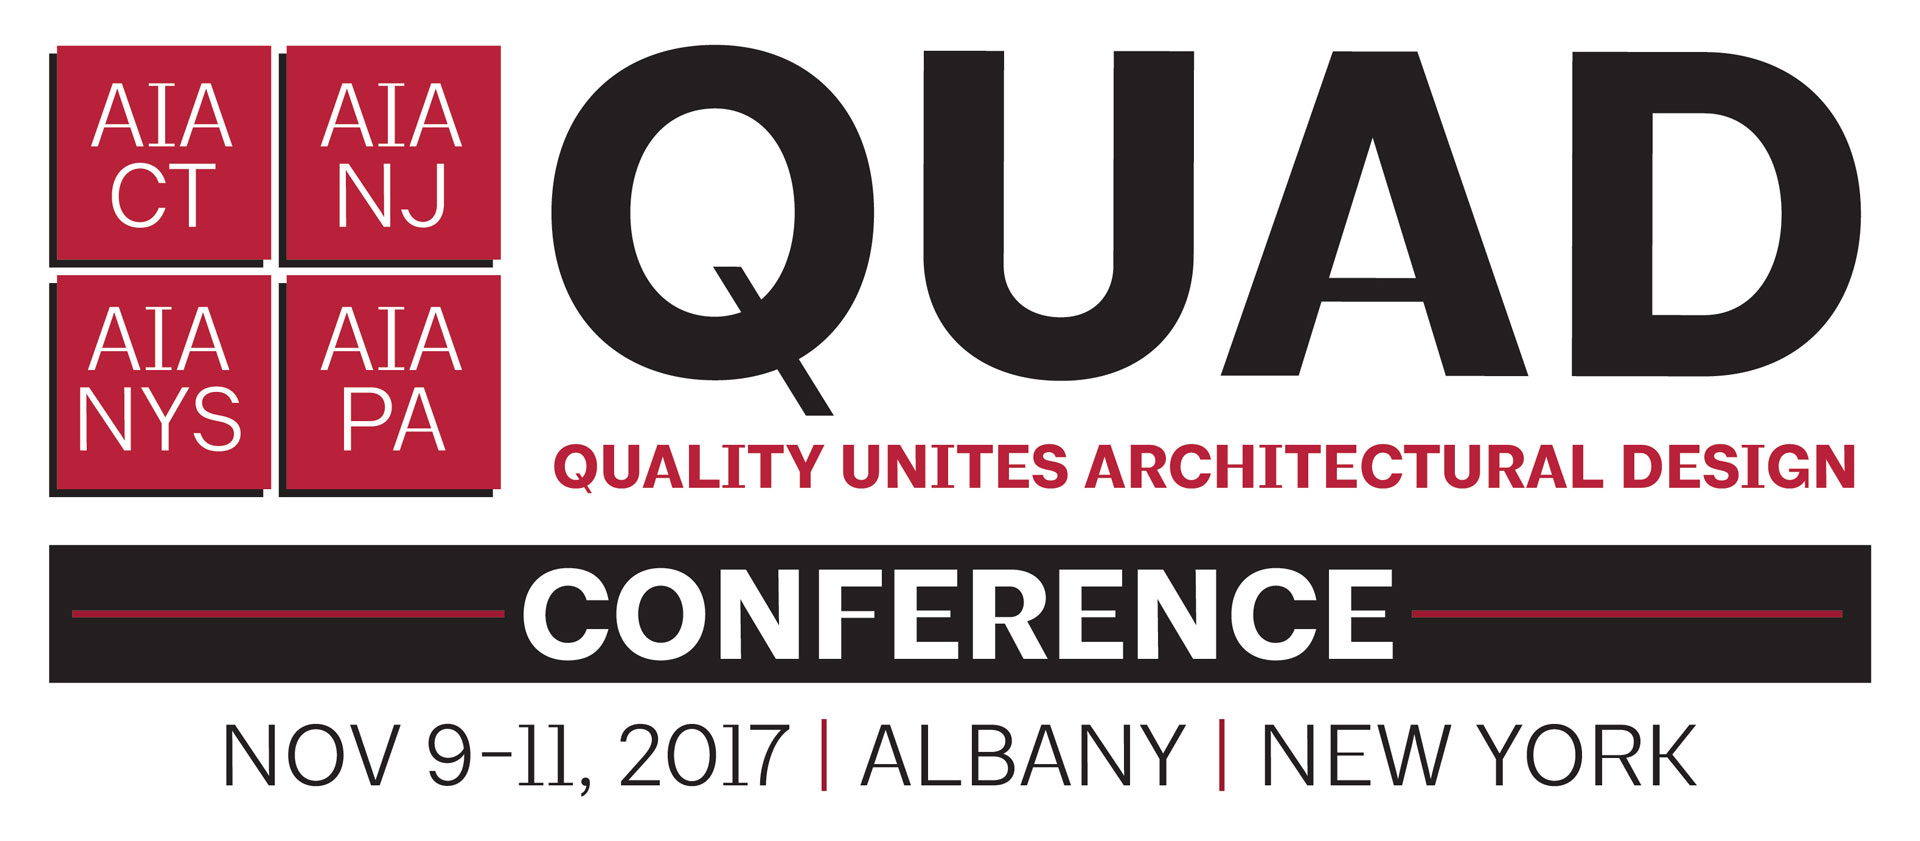 Perfect AIA New York State